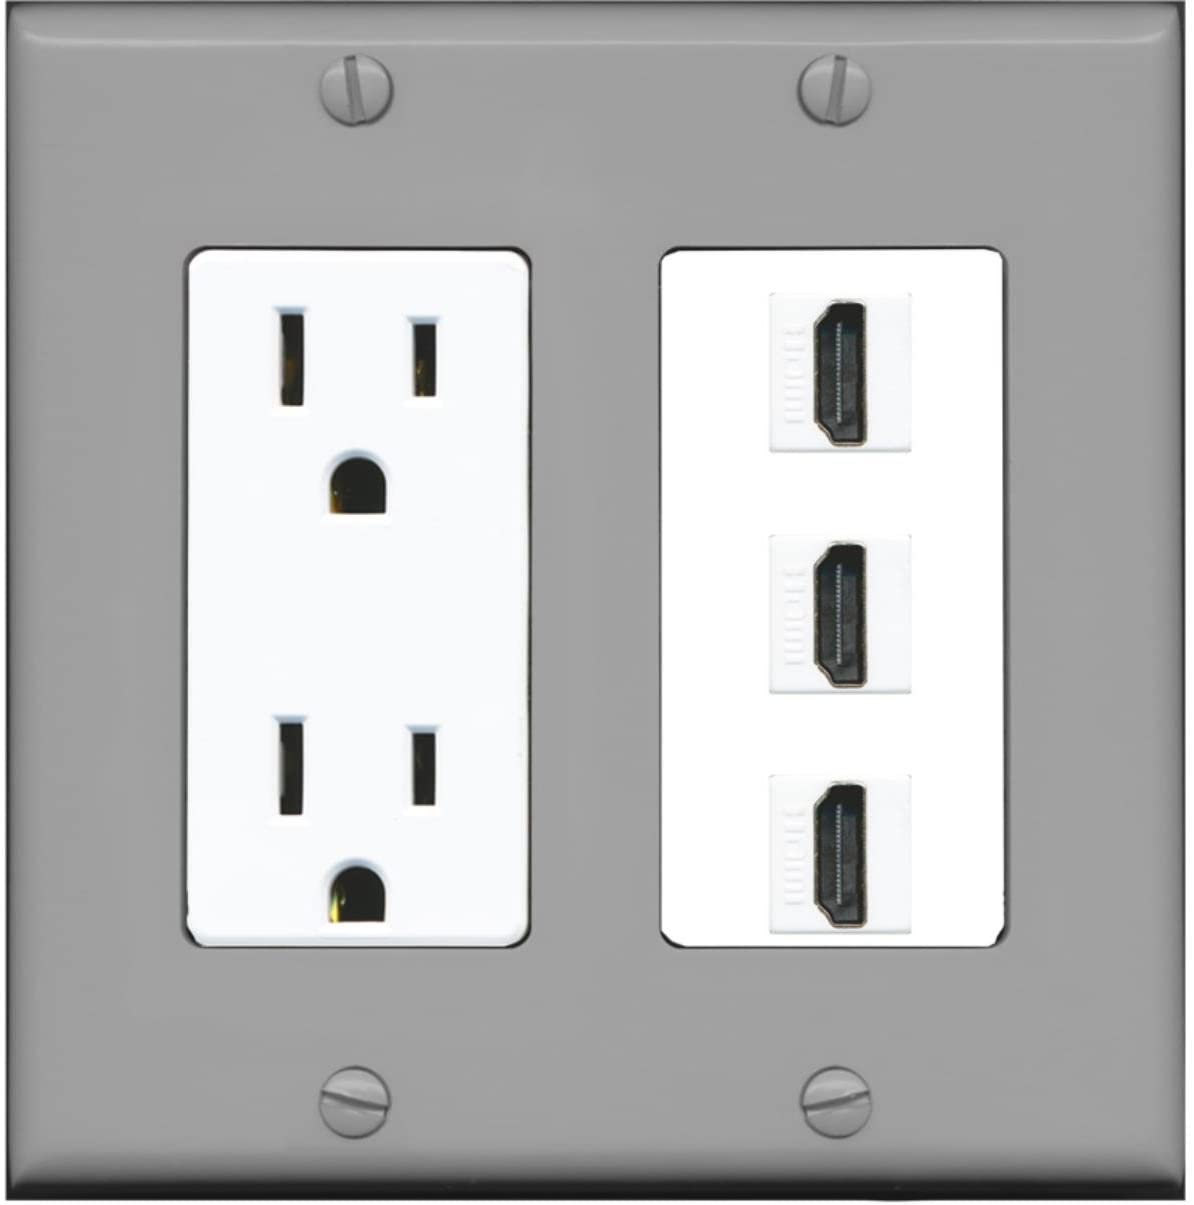 RiteAV - 15 Amp Power Outlet 3 Port HDMI Decorative Wall Plate - Gray/White